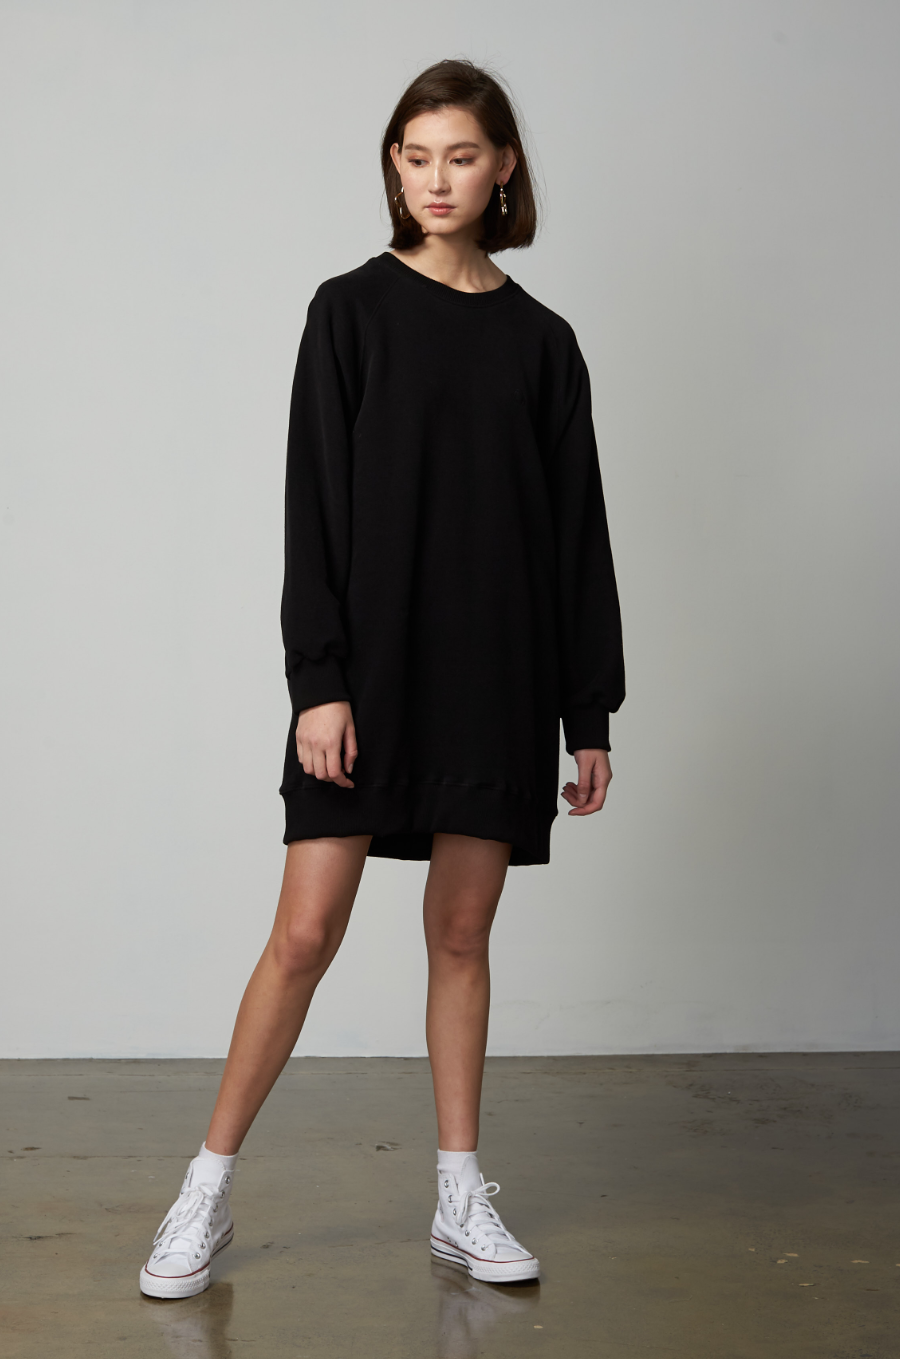 OLIVIA NZ Store online | Rooney Fleeced Raglan Dress / Black